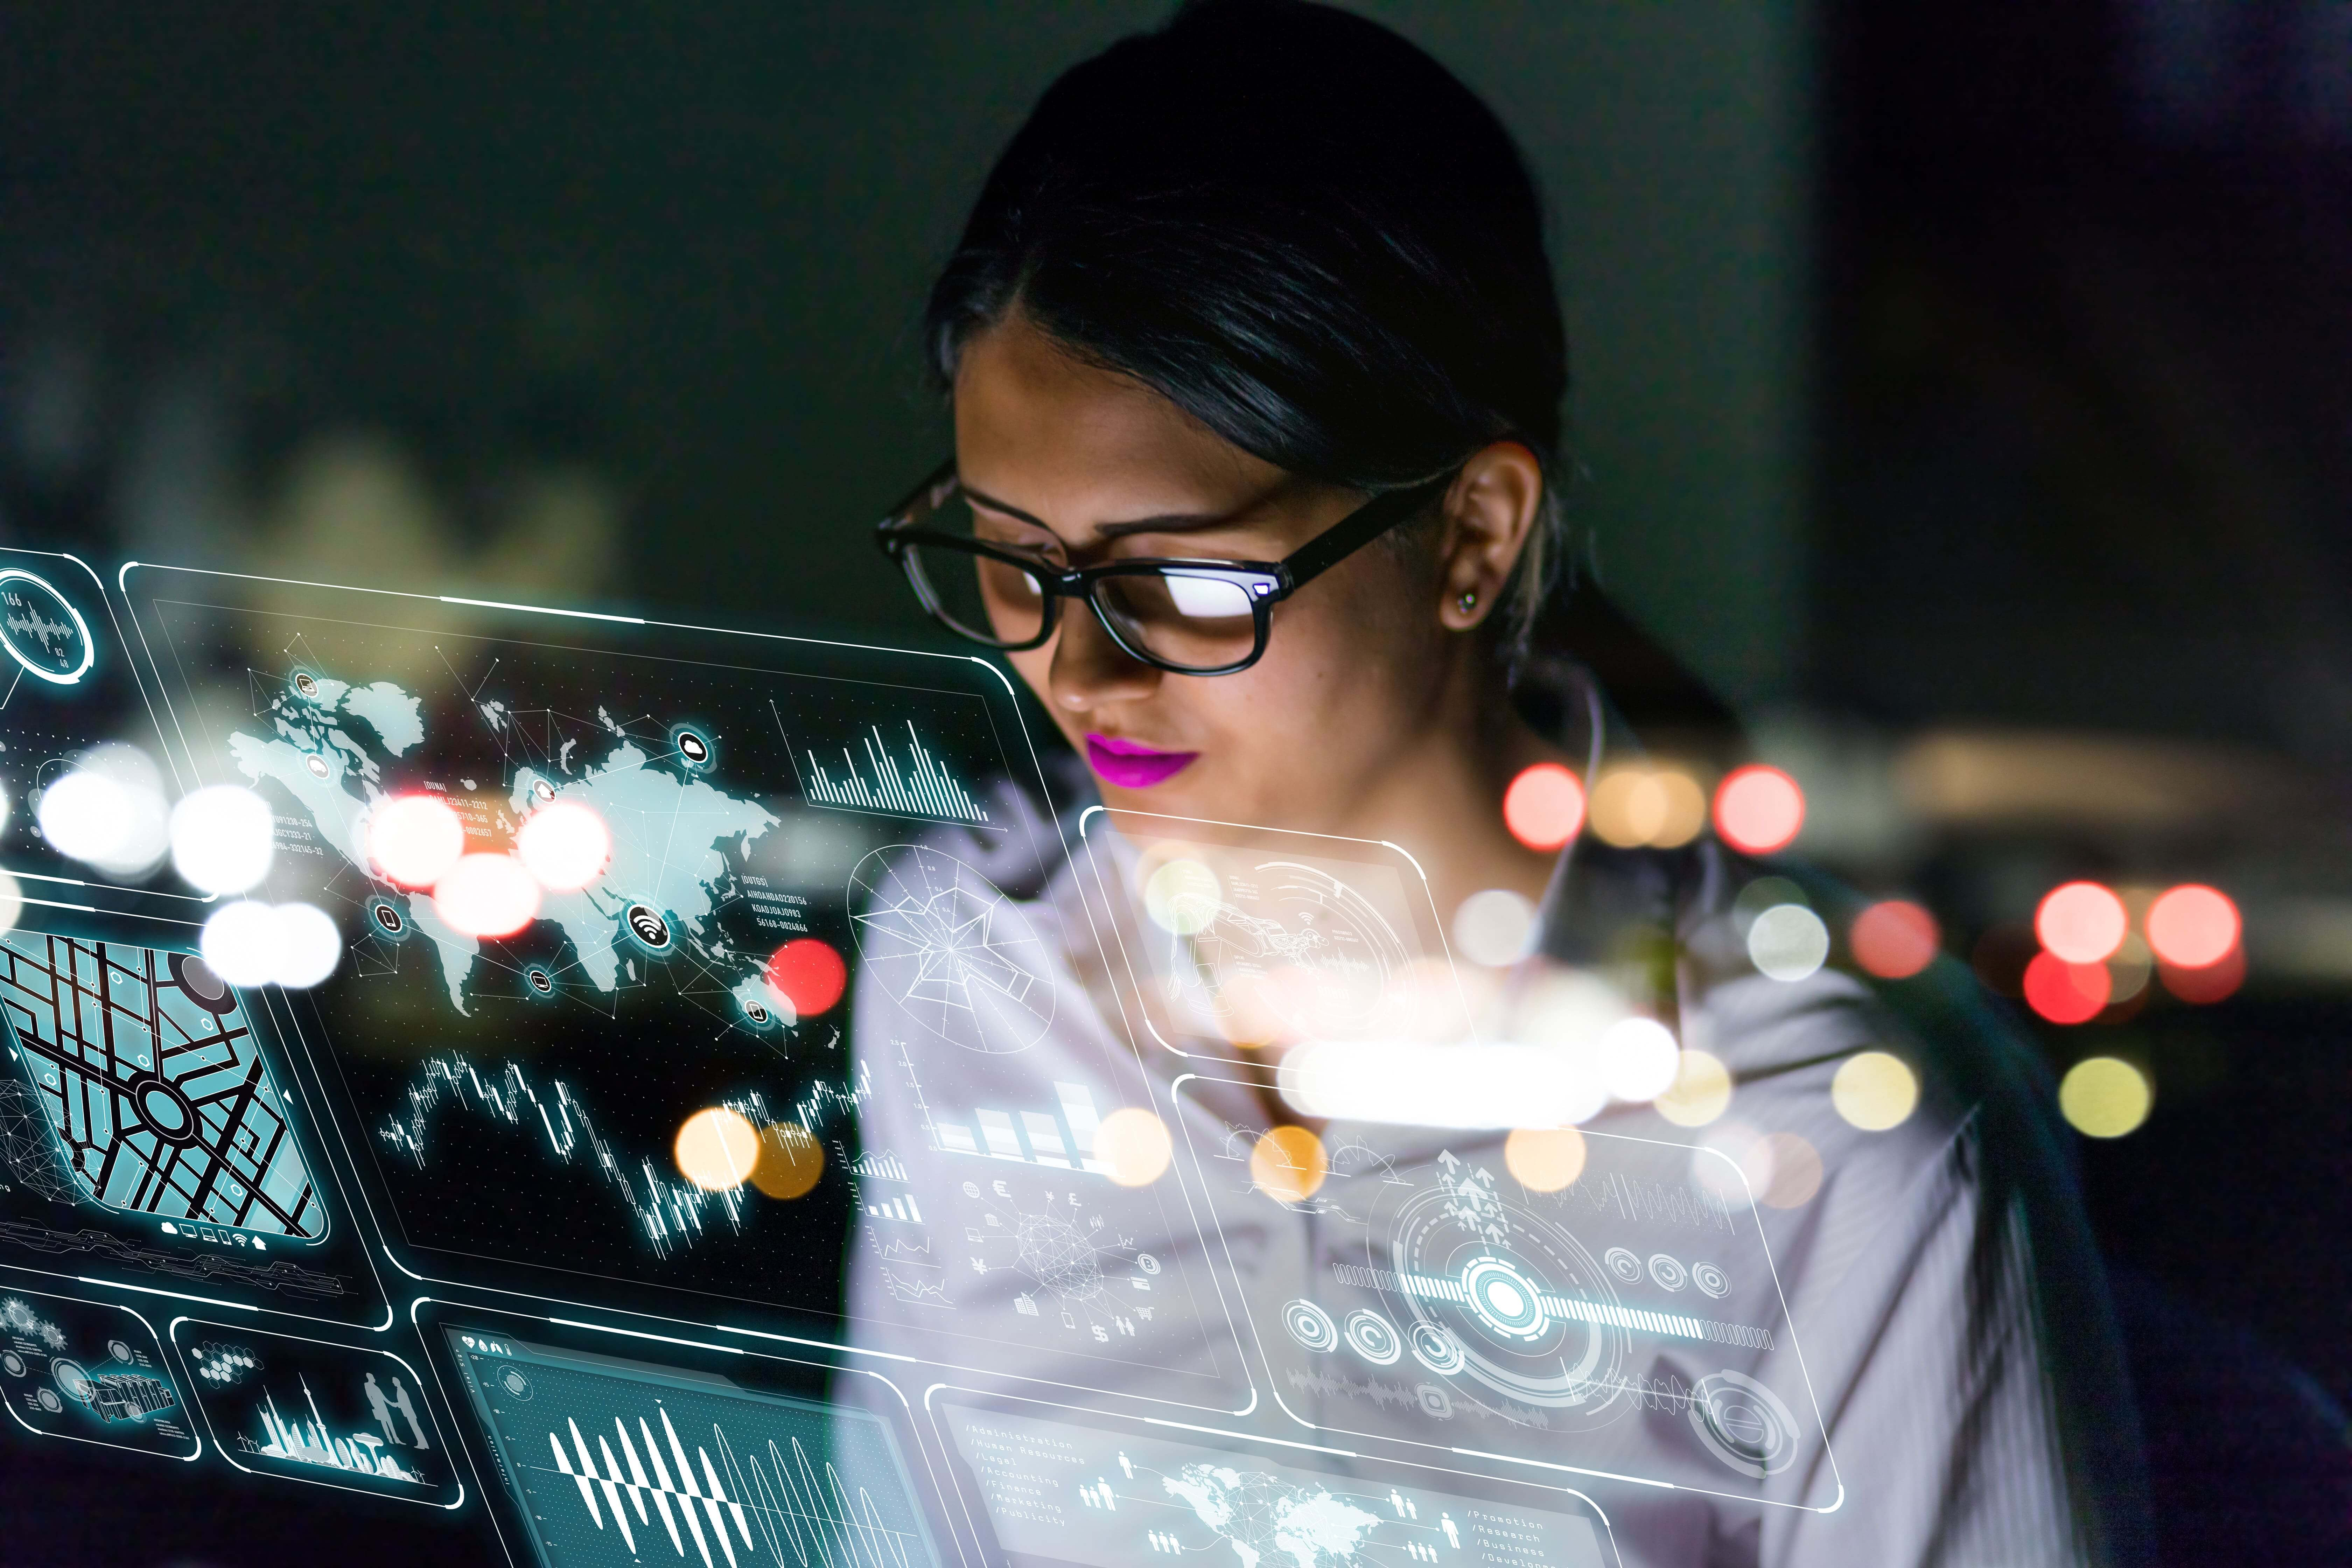 businesswoman looking at higher education event data